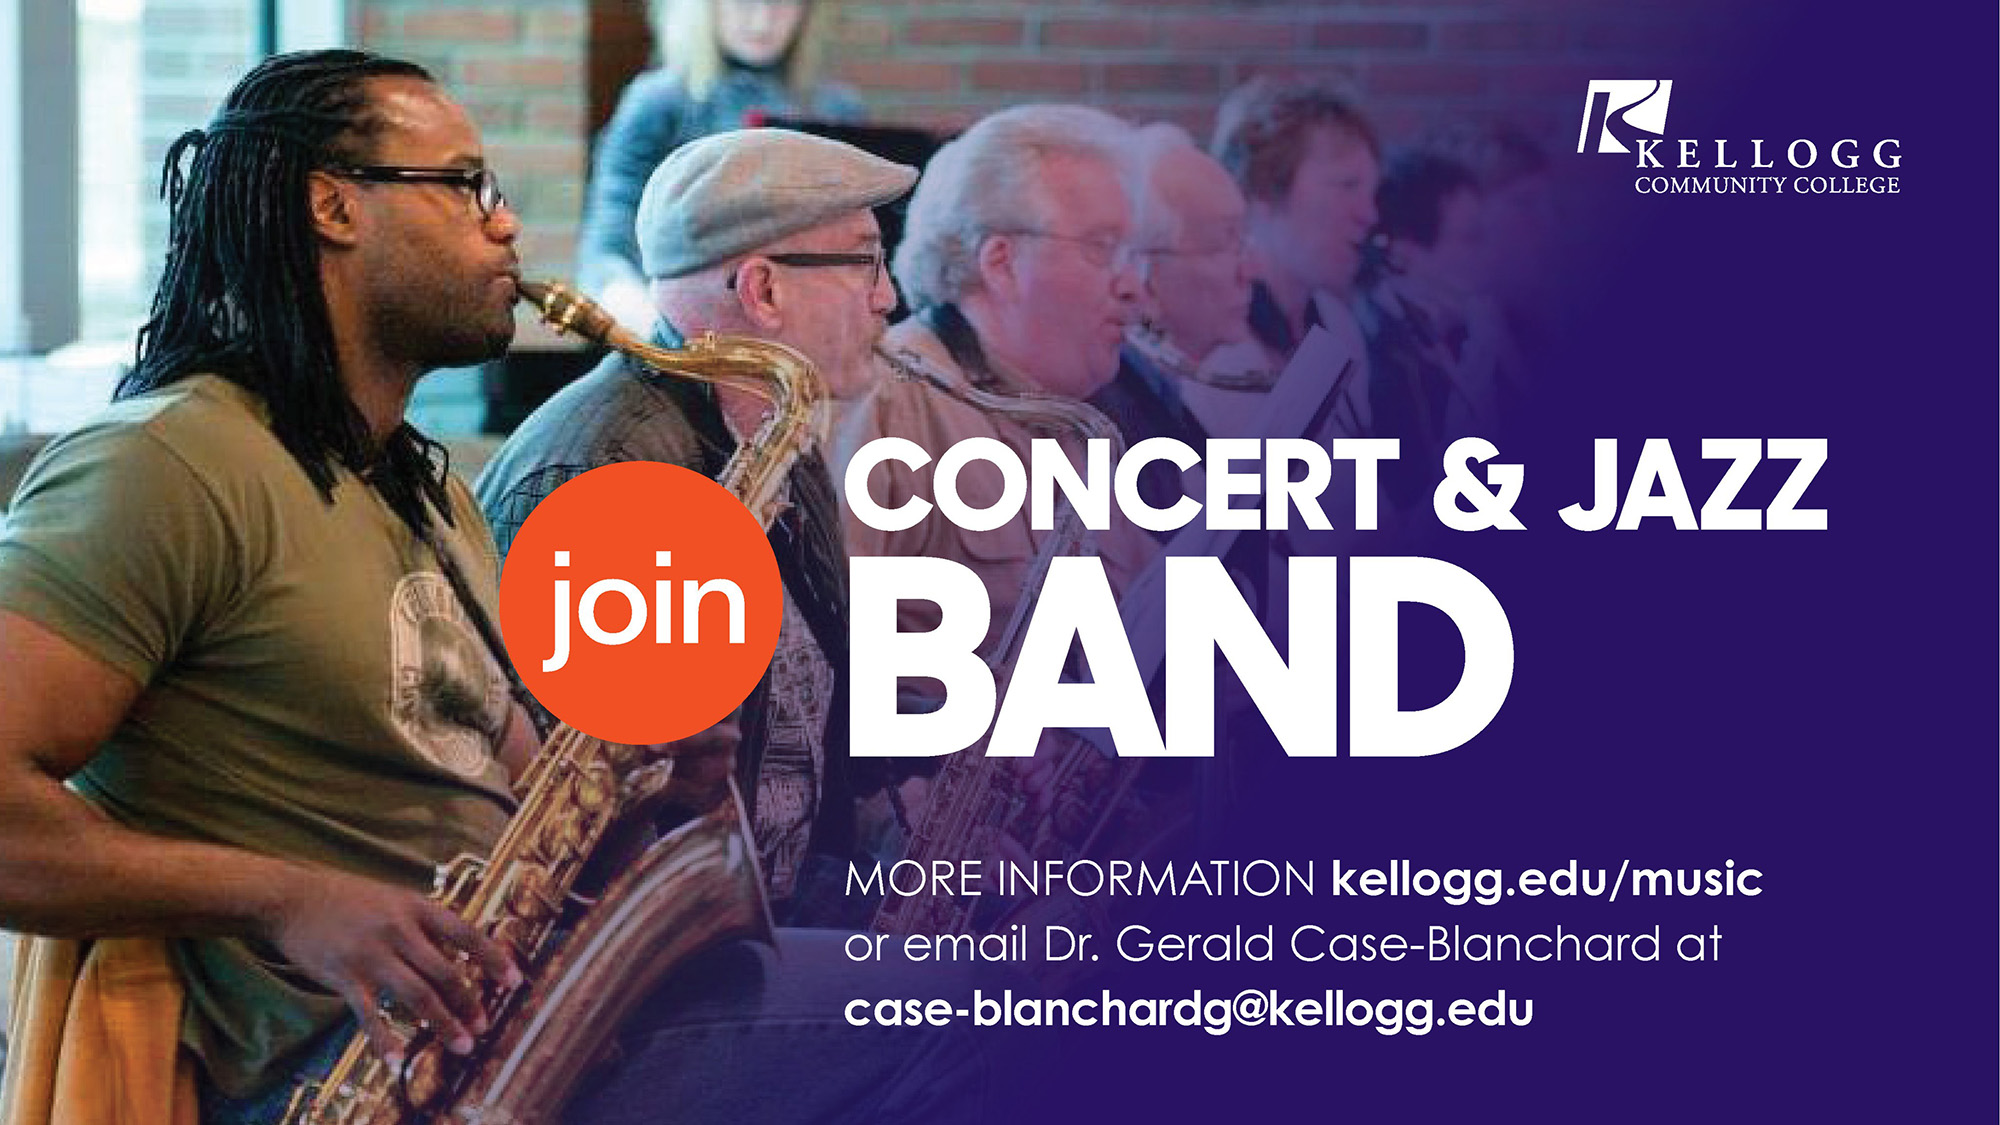 """Student musicians play instruments on a slide that reads, """"Join Concert & Jazz Band. More information kellogg.edu/music or email Dr. Gerald Case-Blanchard at case-blanchardg@kellogg.edu."""""""